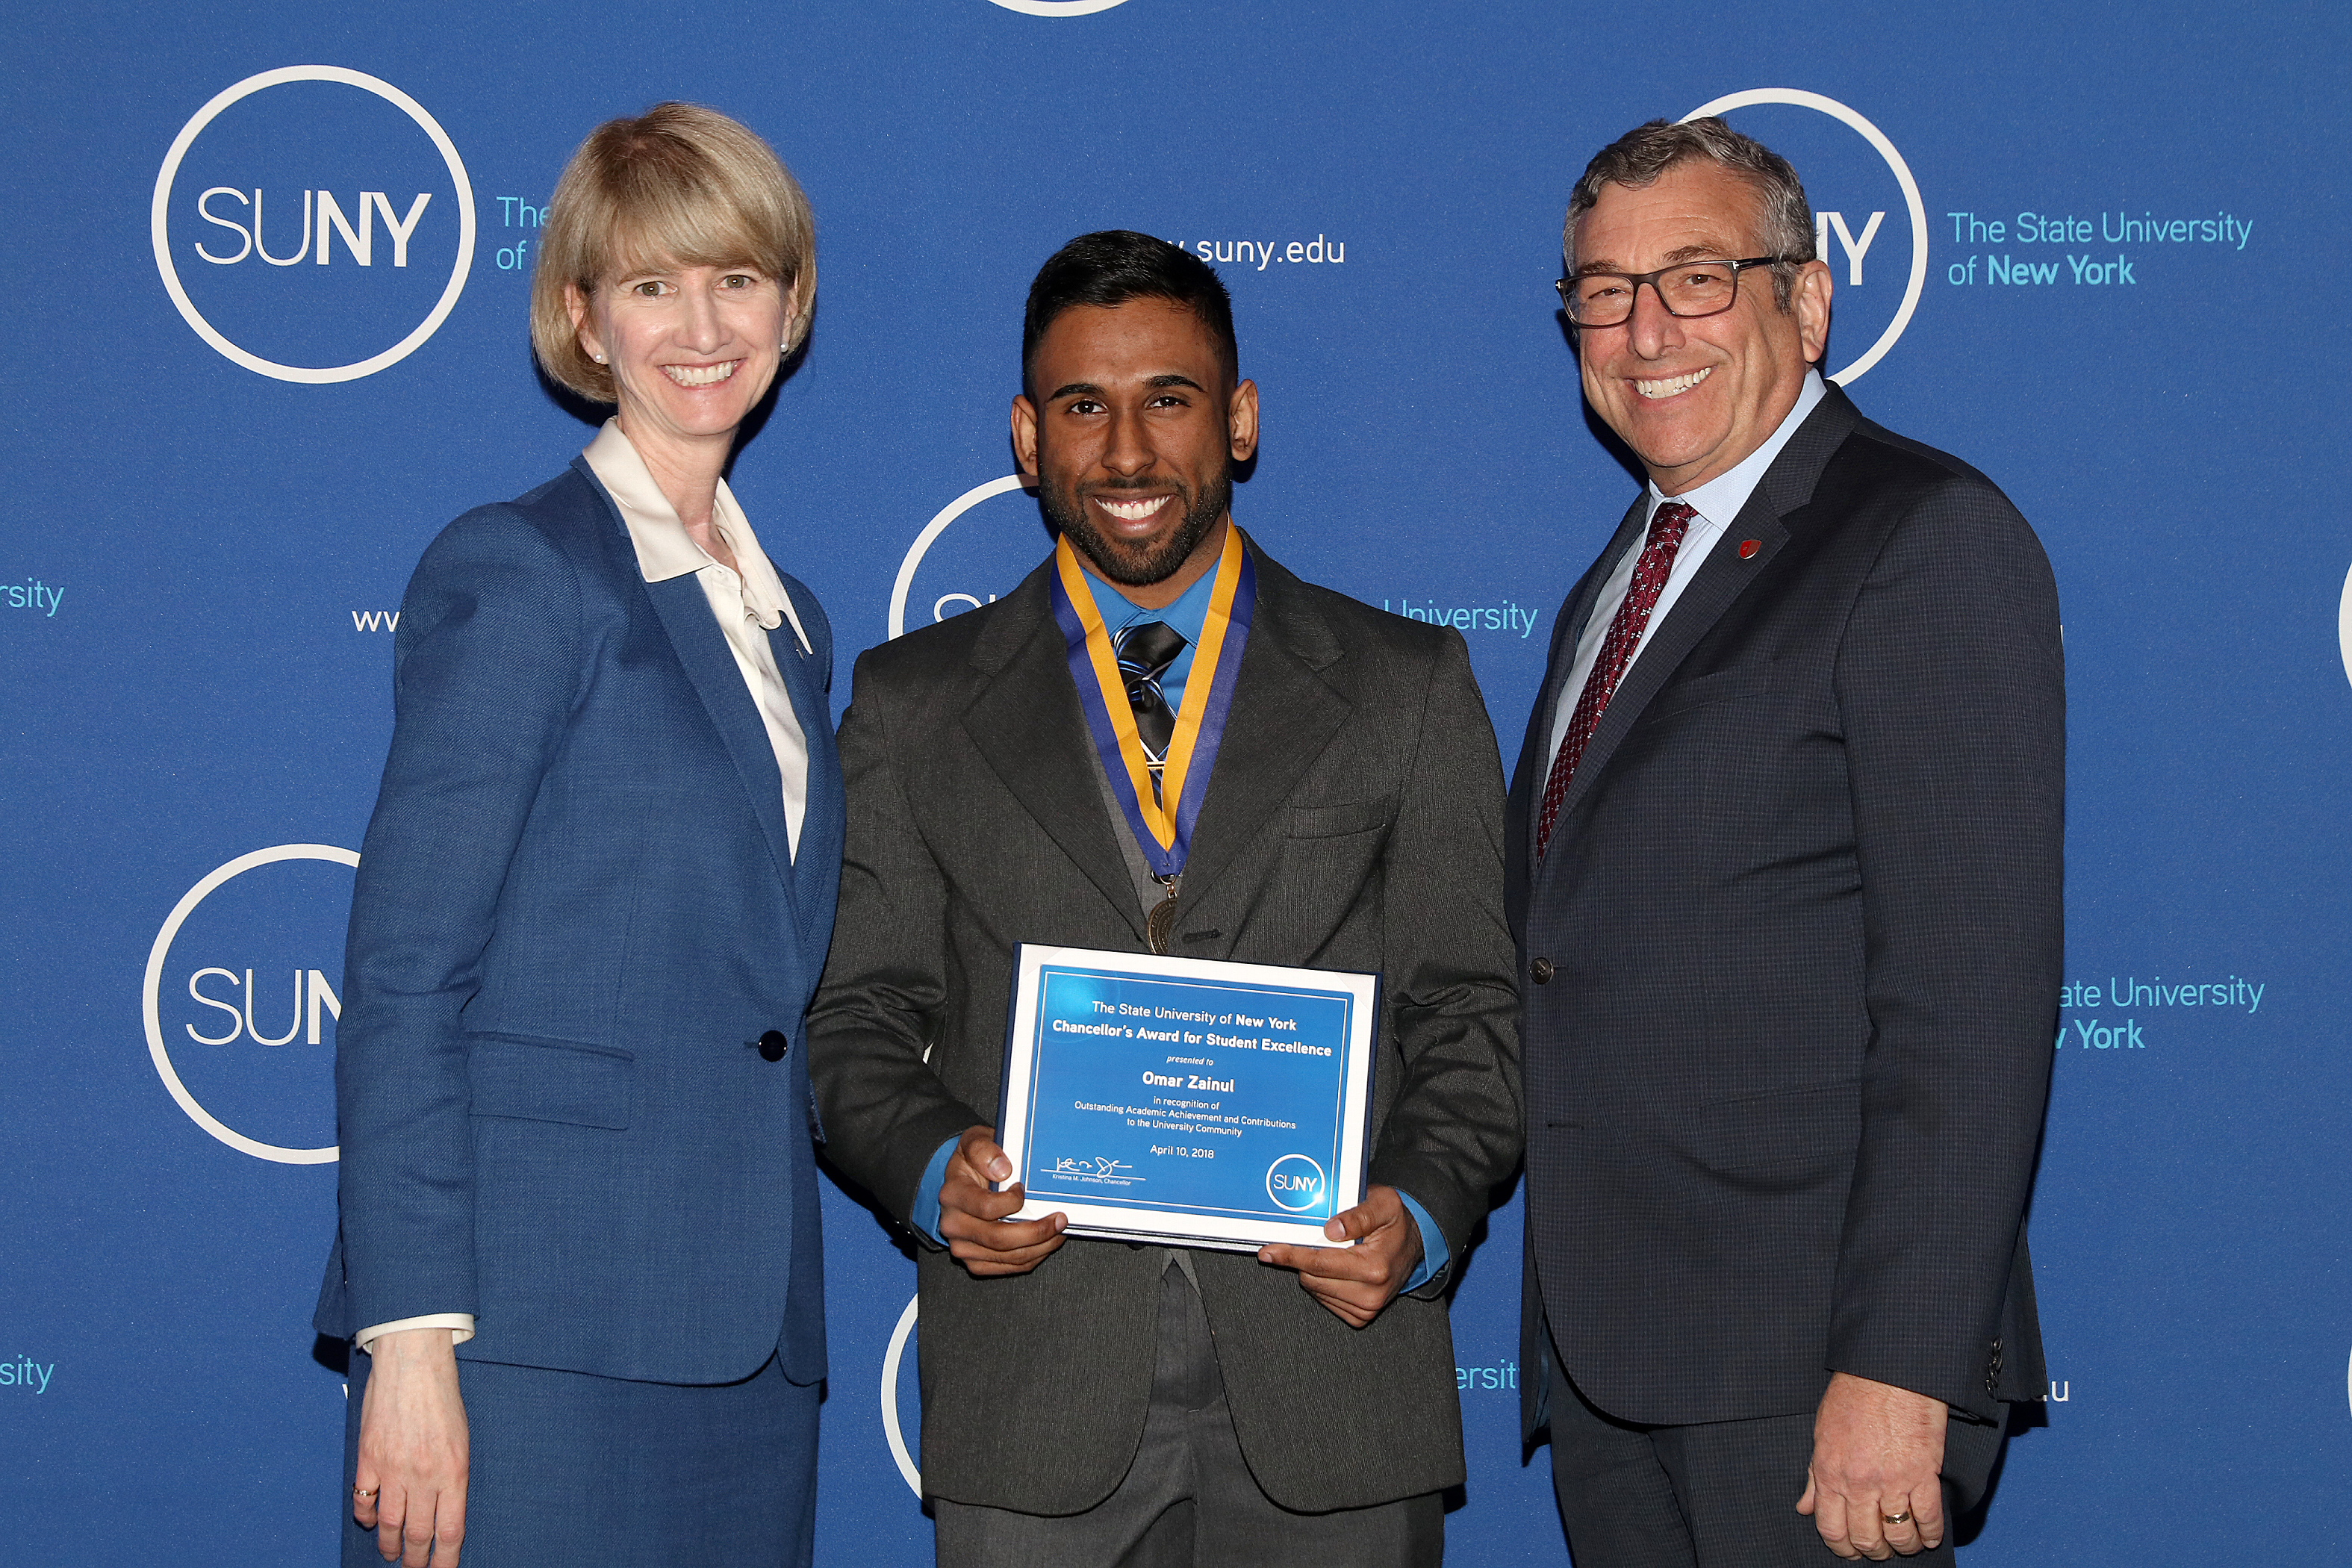 Awardee Omar Zainul with Chancellor Johnson and Vice Provost Robbins